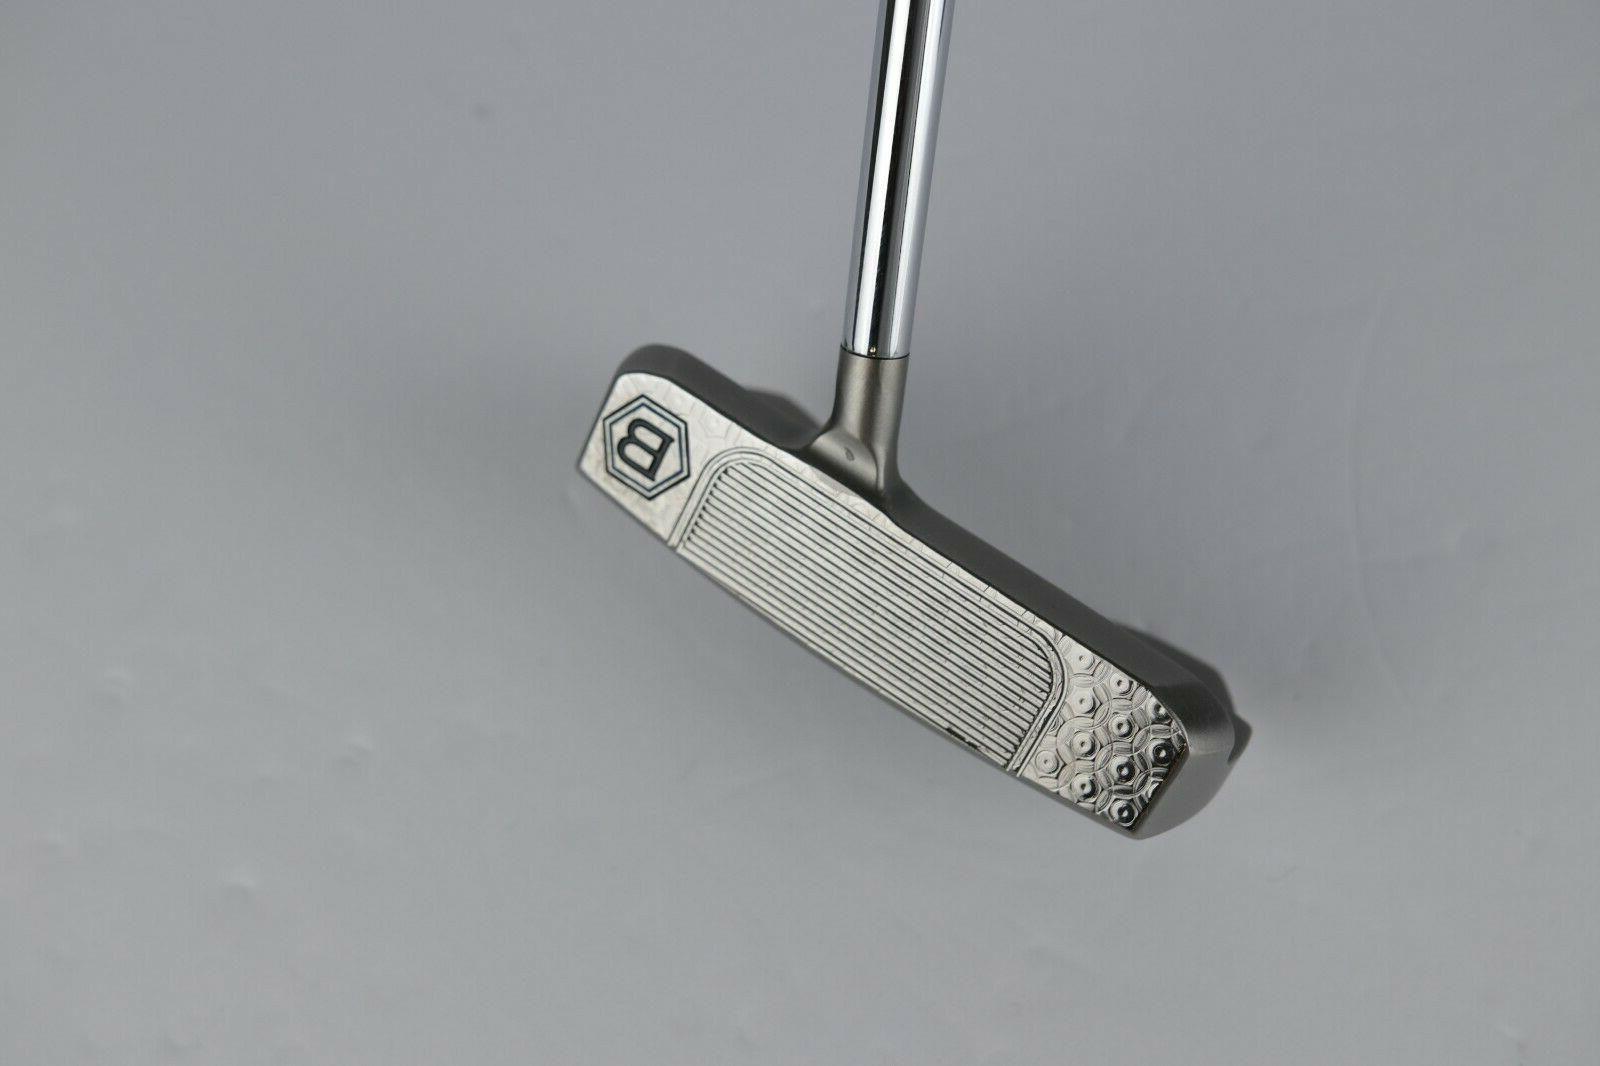 Bettinardi Kuchar 2 Putter